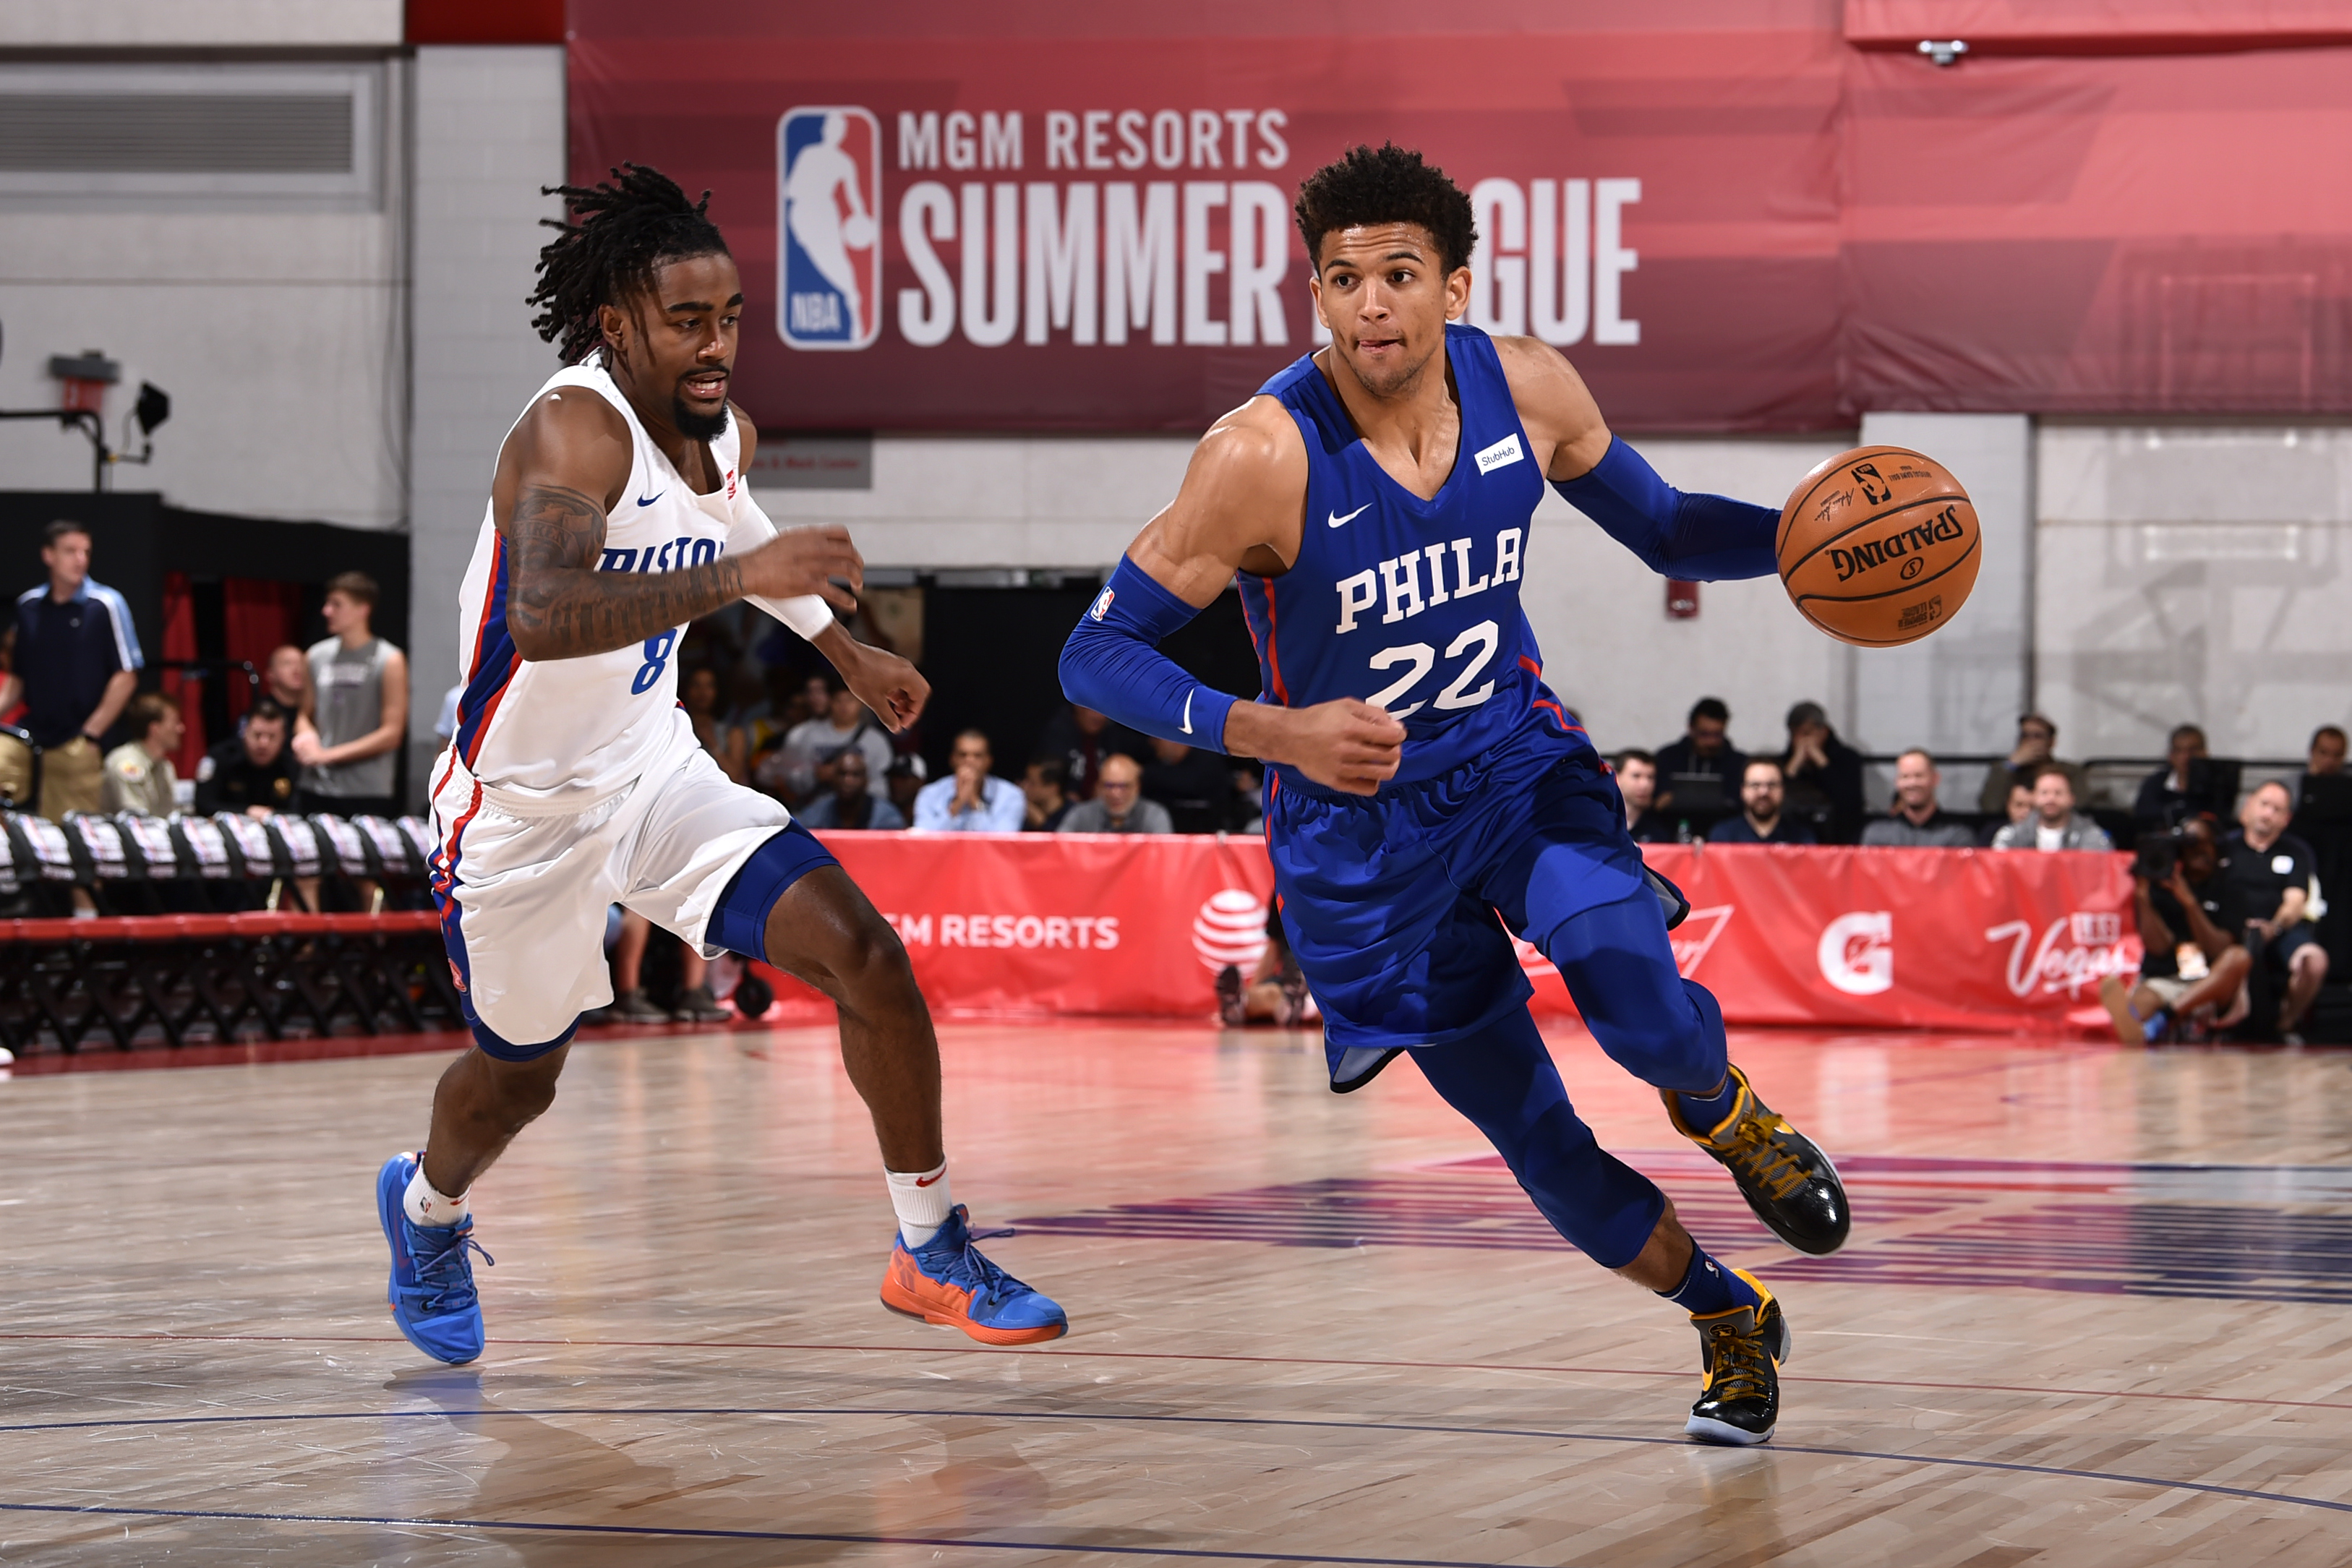 2019 Las Vegas Summer League - Philadelphia 76ers v Detroit Pistons